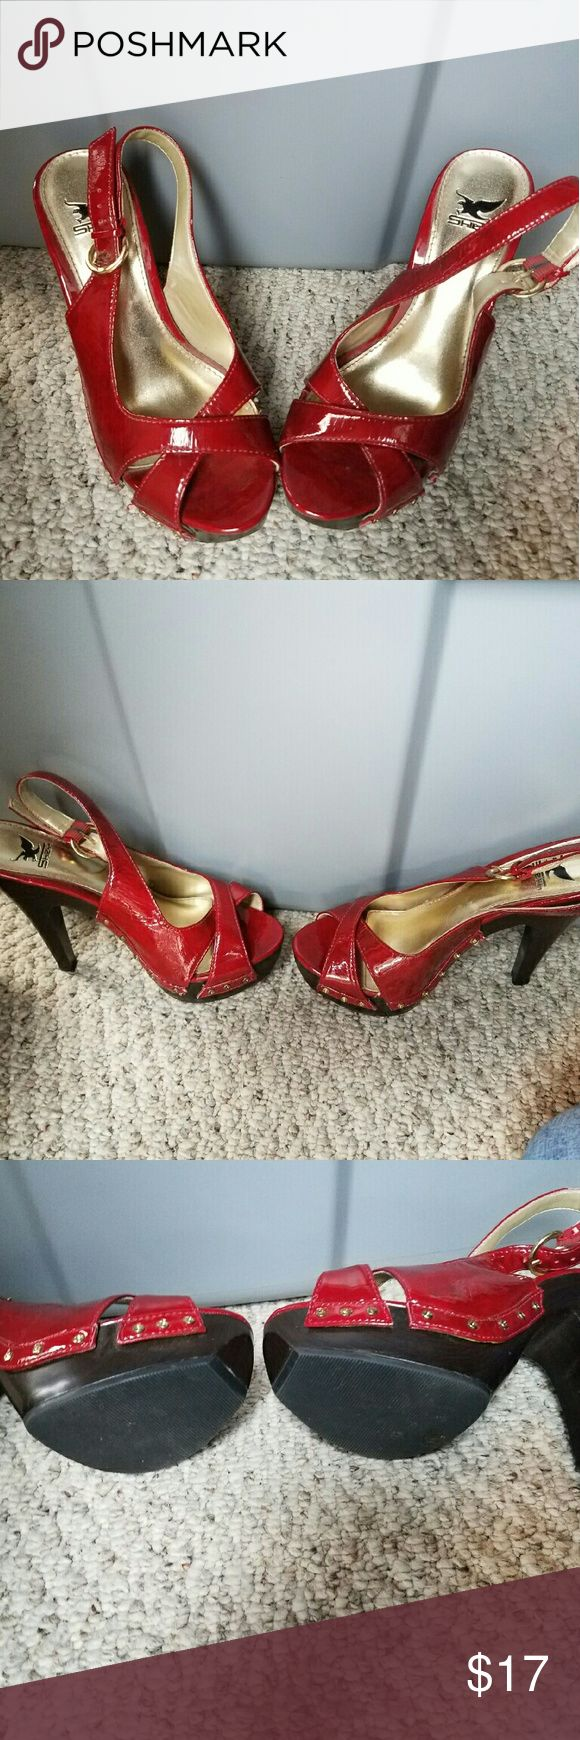 Shiekh high heel shoes Red high hill shiekh shoes. Good condition. Shoes don't have a size. I'm a 6.5 and they fit. shiekh Shoes Heels